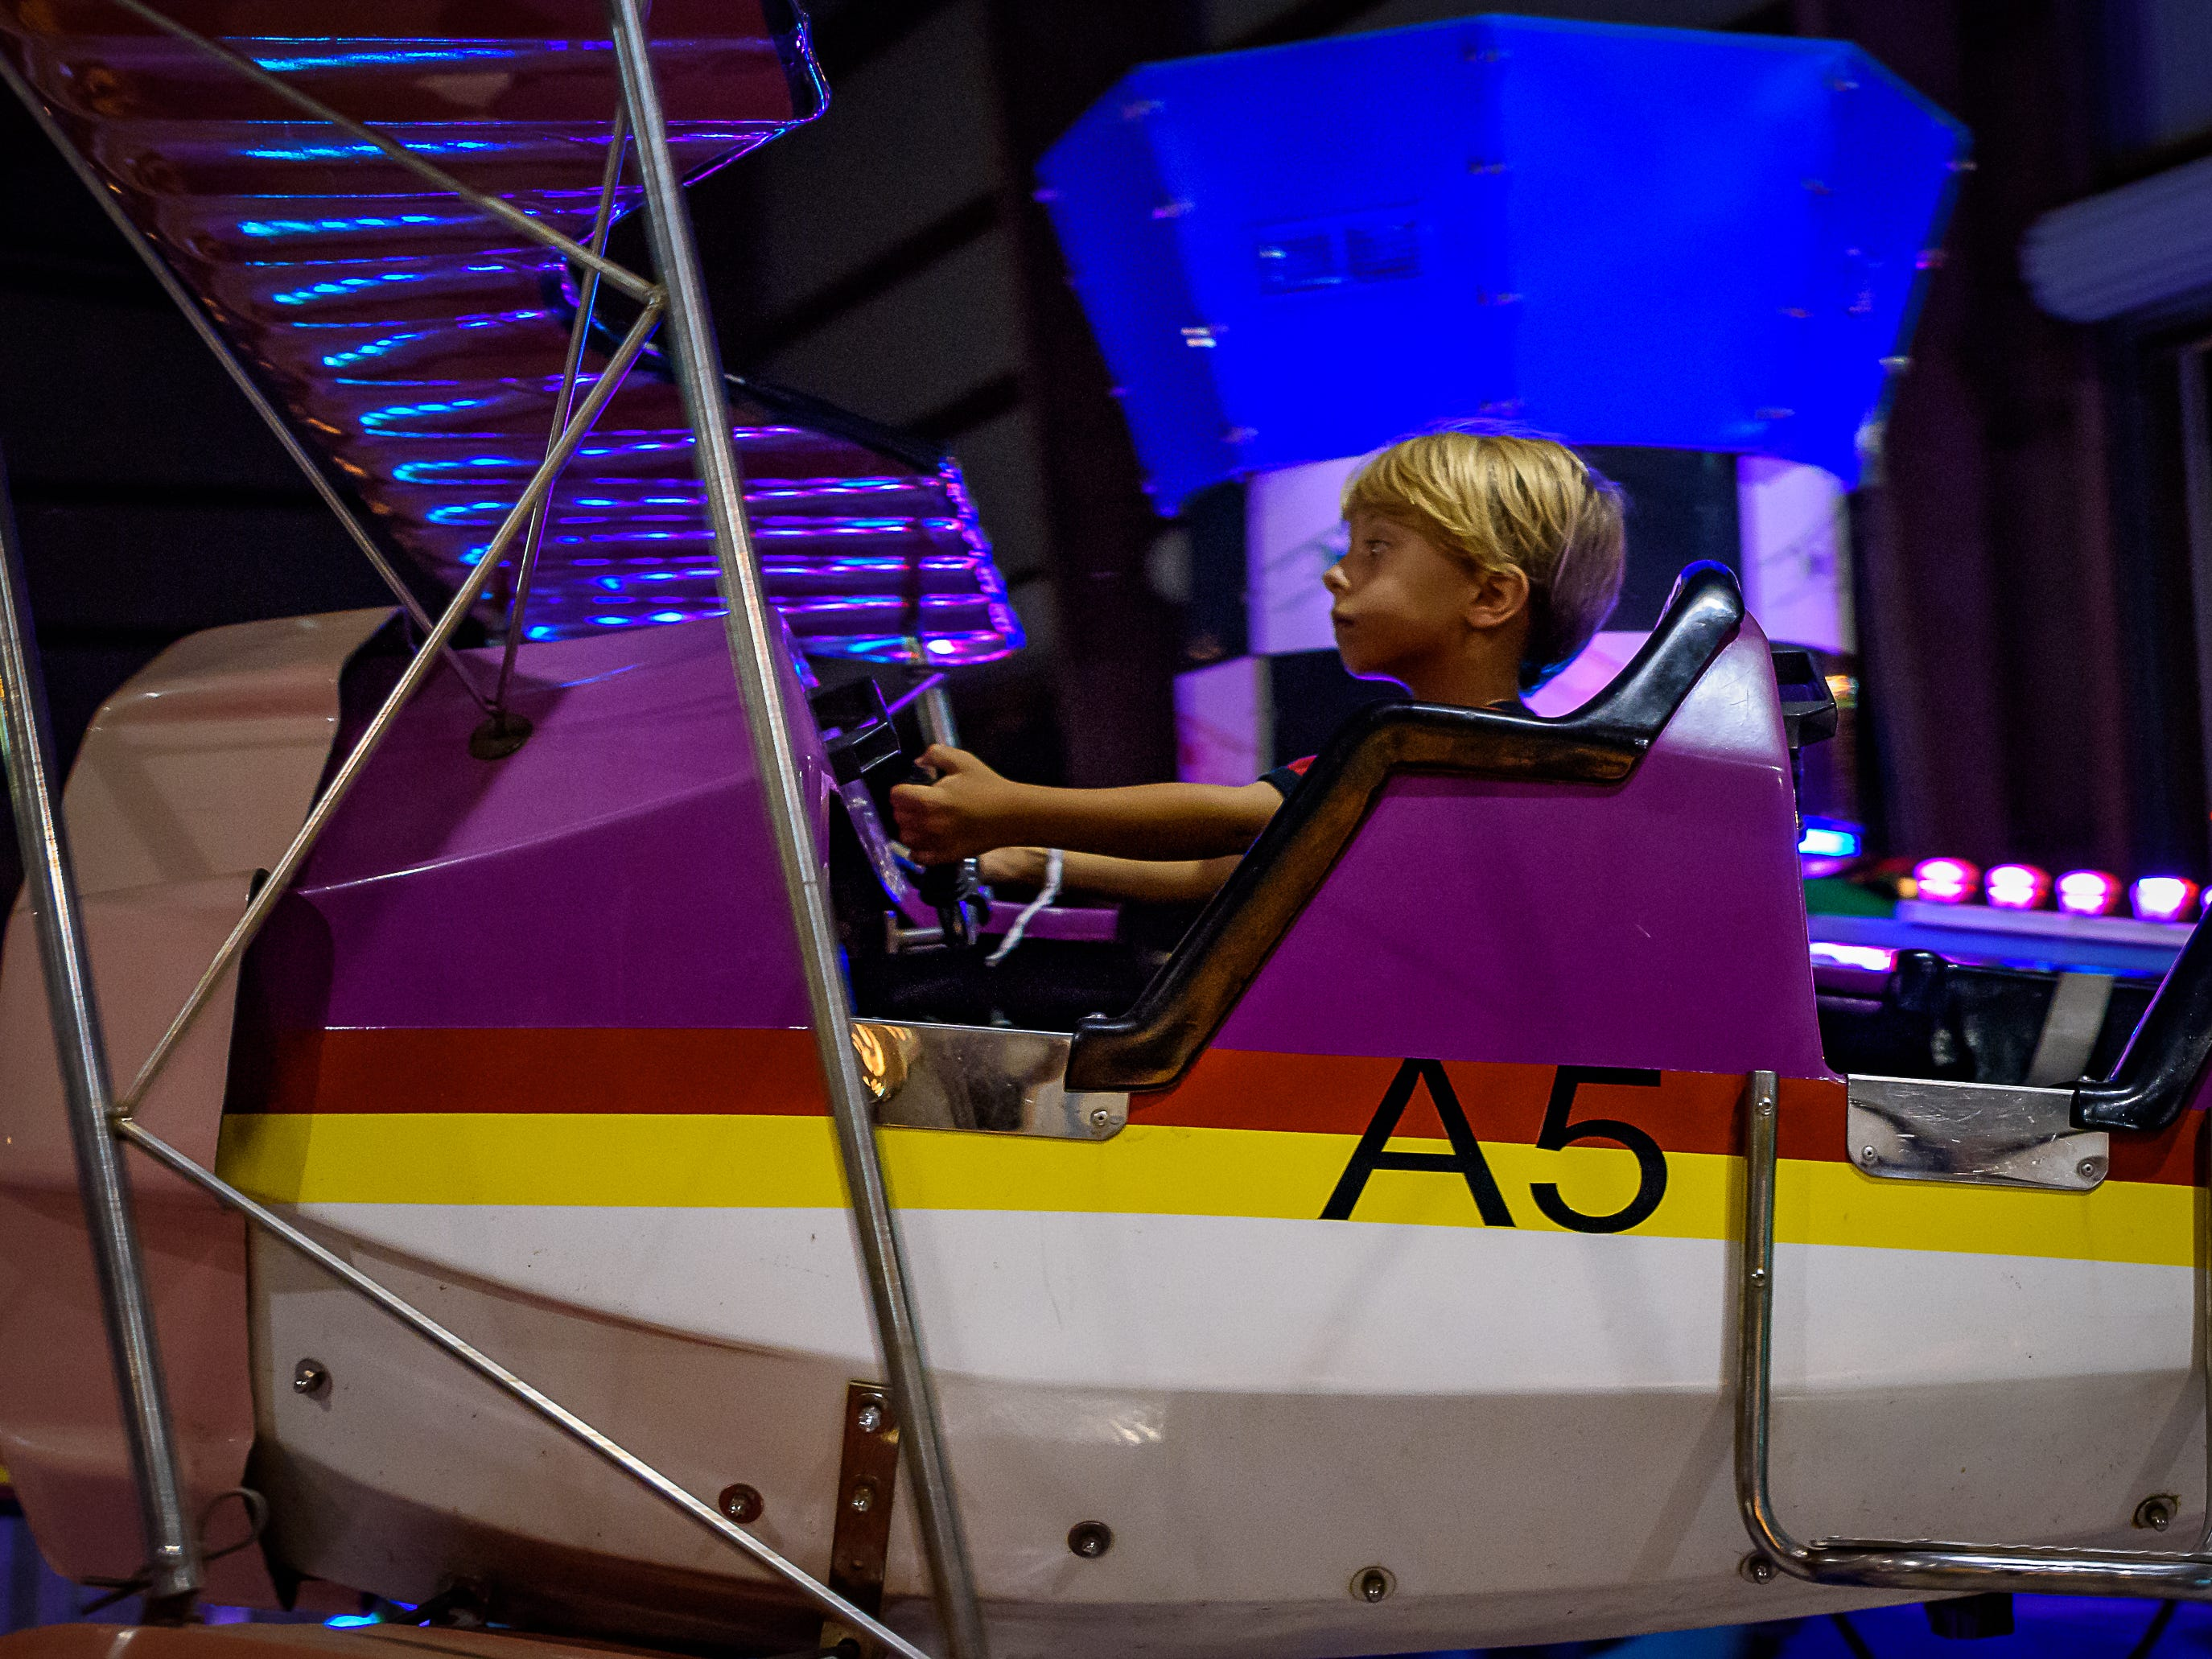 The Chincoteague Fireman's Carnival offers attractions for patrons of all ages.